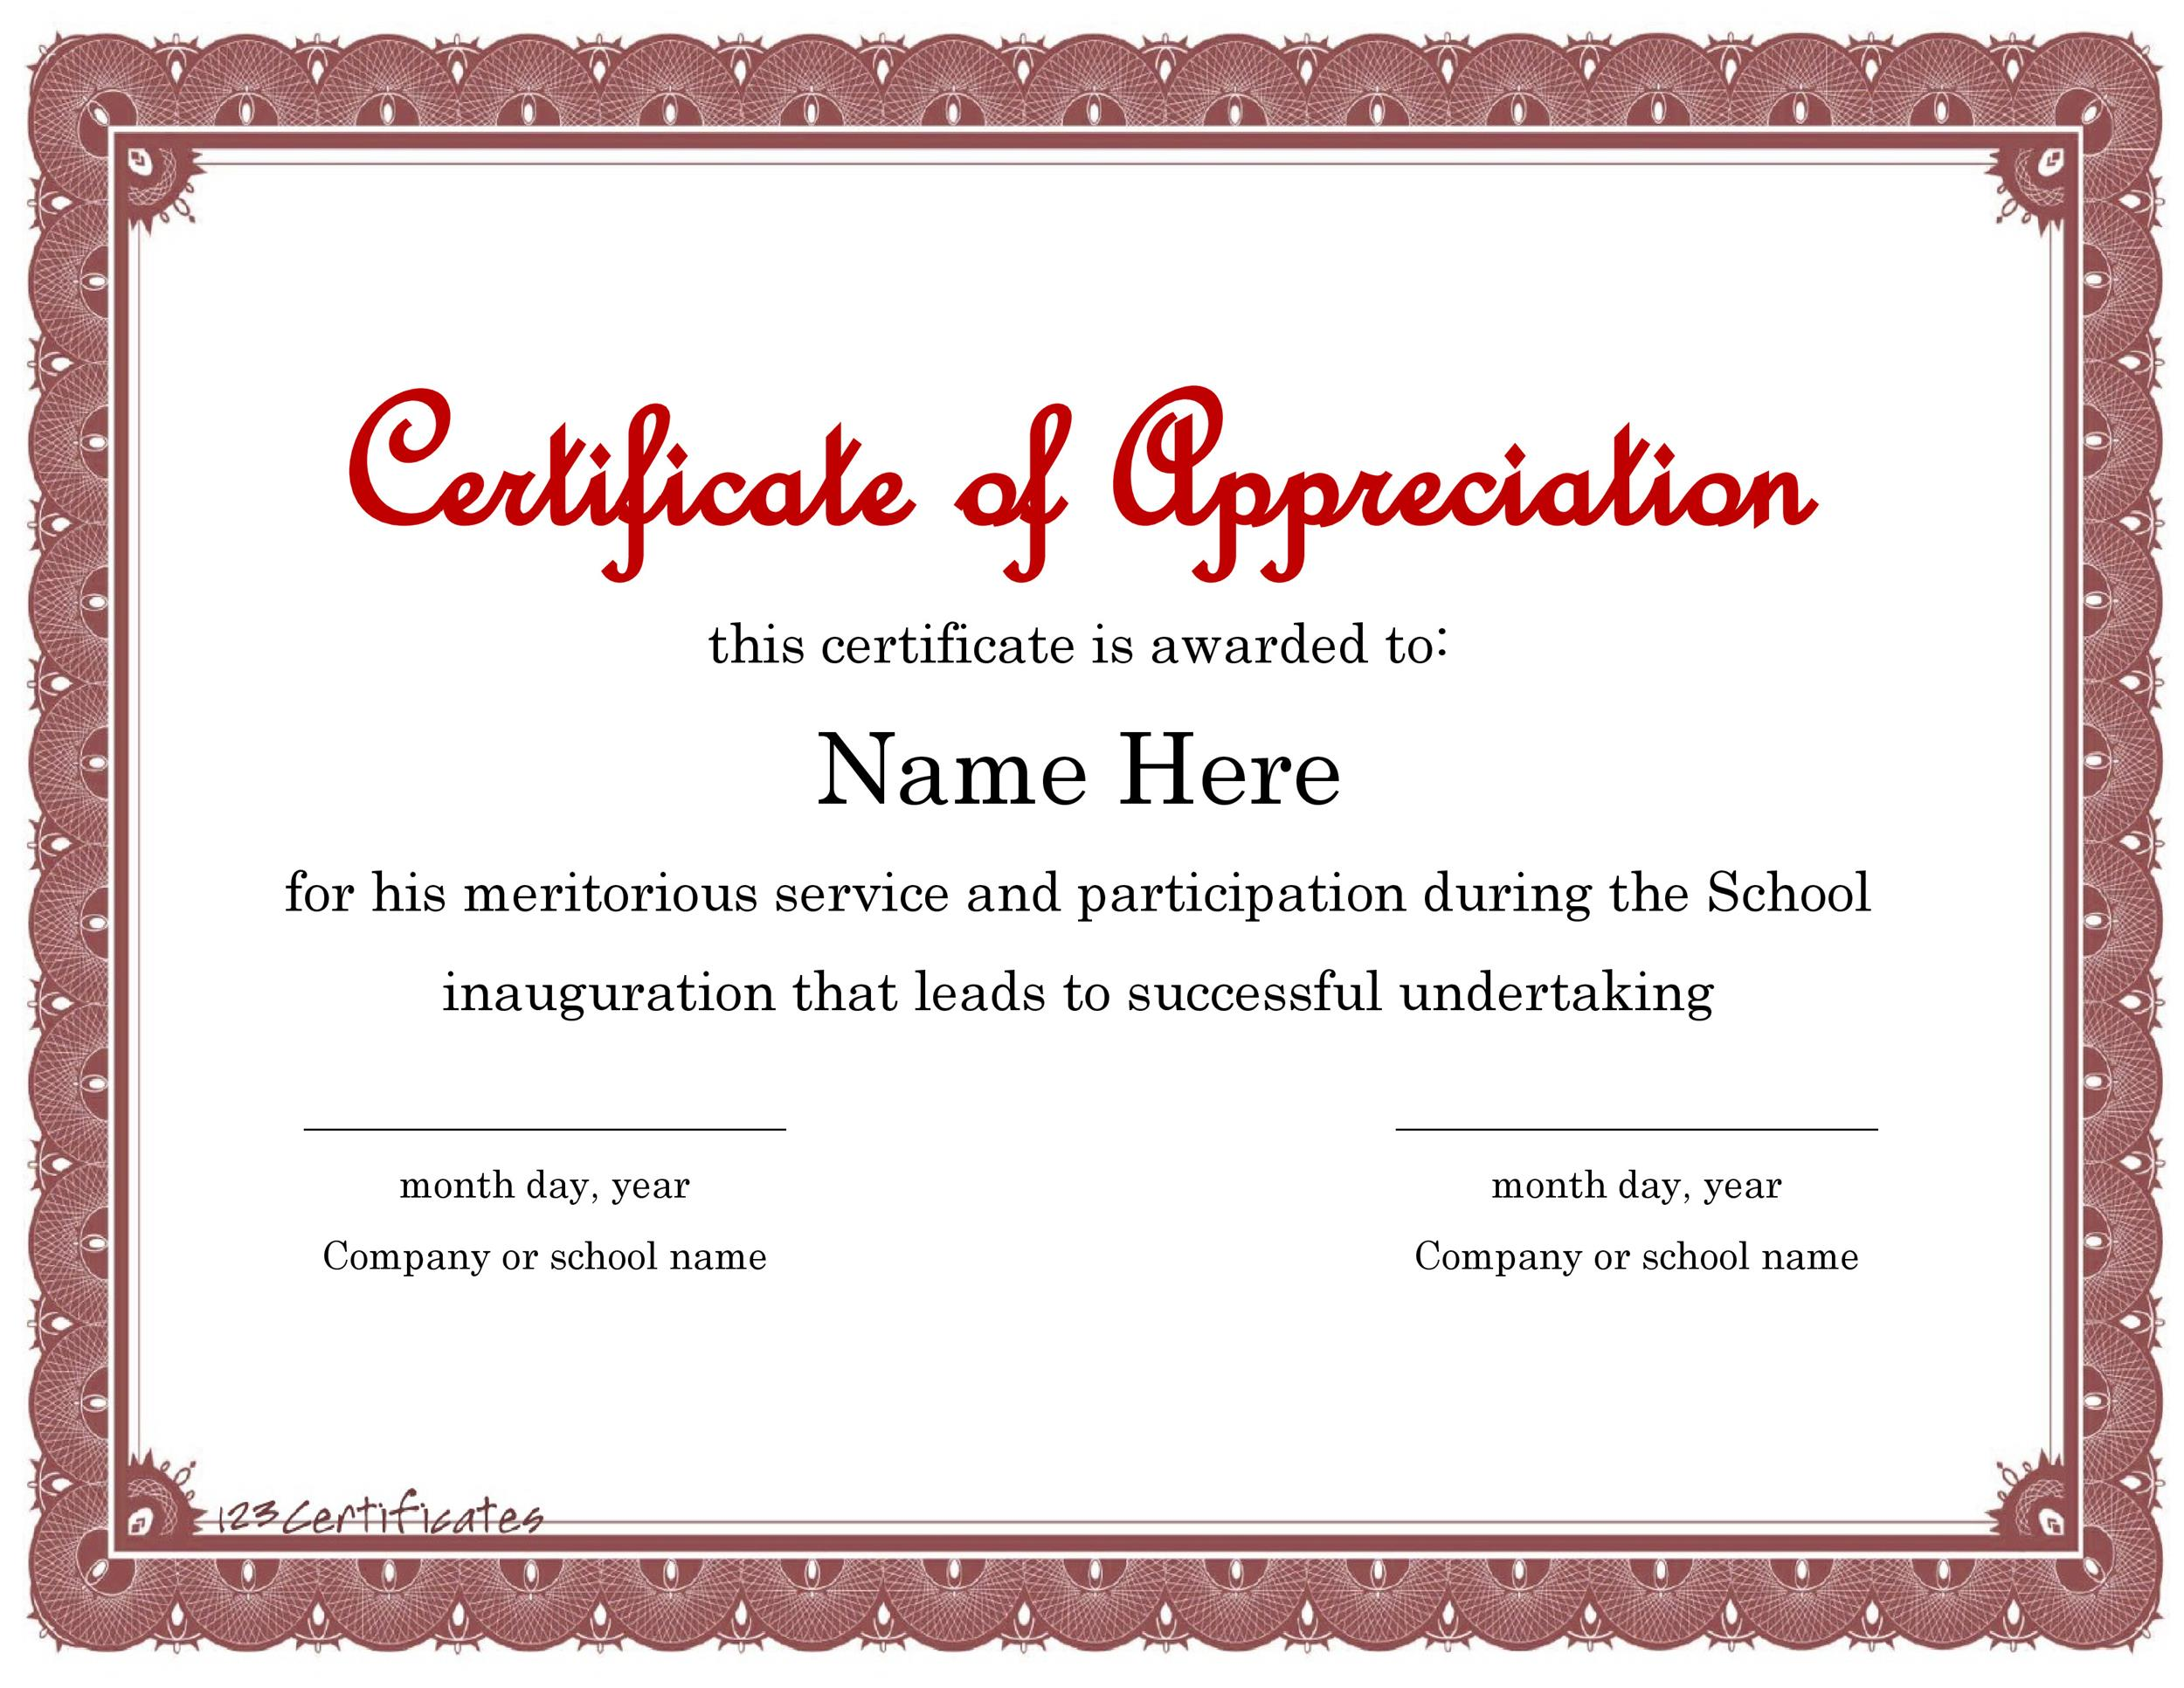 30 free certificate of appreciation templates and letters printable certificate of appreciation 01 yadclub Image collections